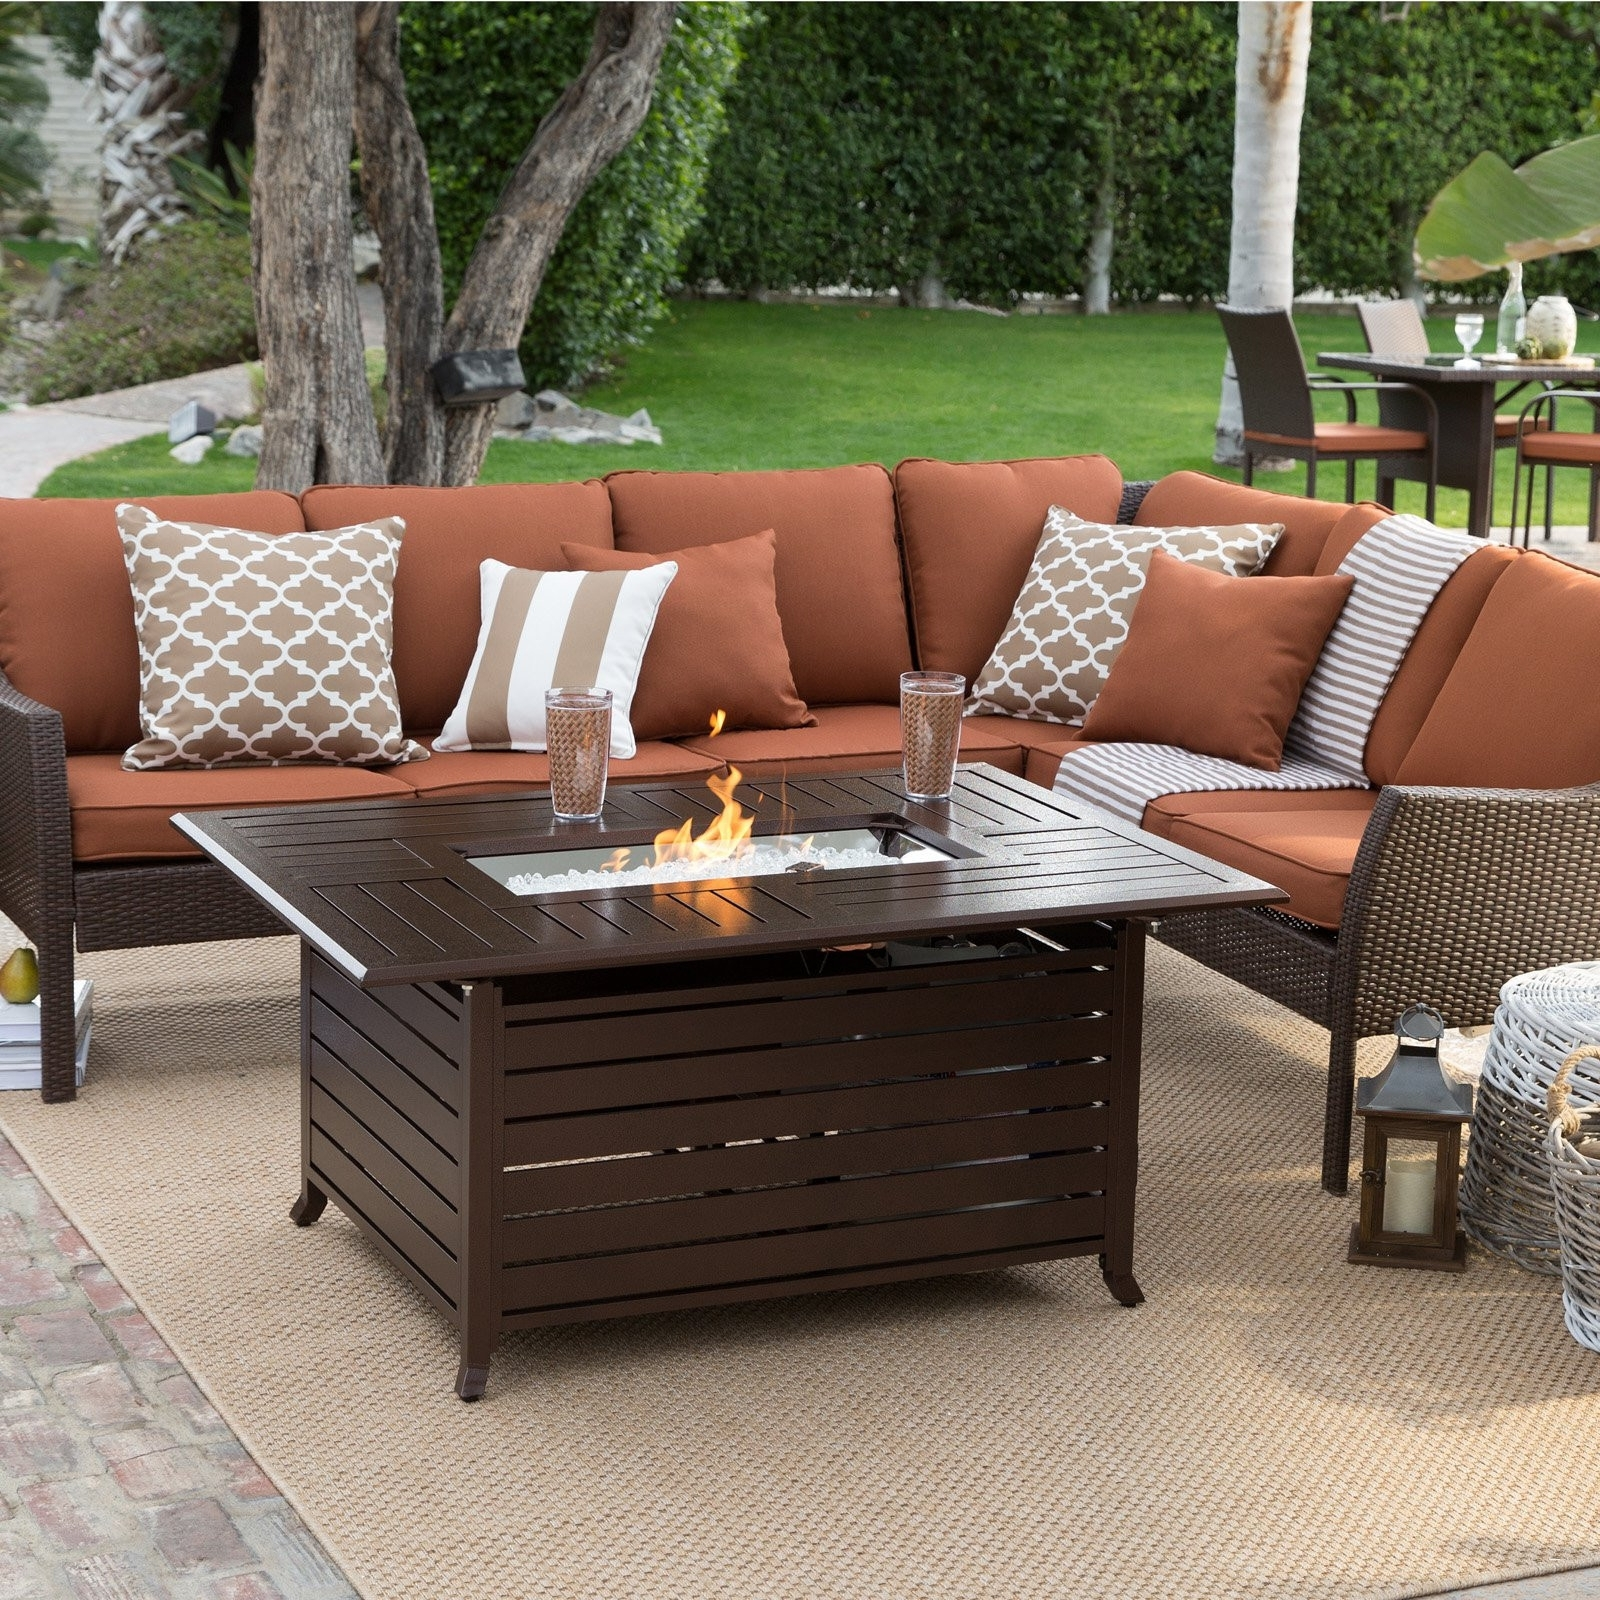 Patio Conversation Sets With Fire Pit Table Within Preferred 30 Luxury Patio Set With Fire Pit Table Design (View 8 of 20)